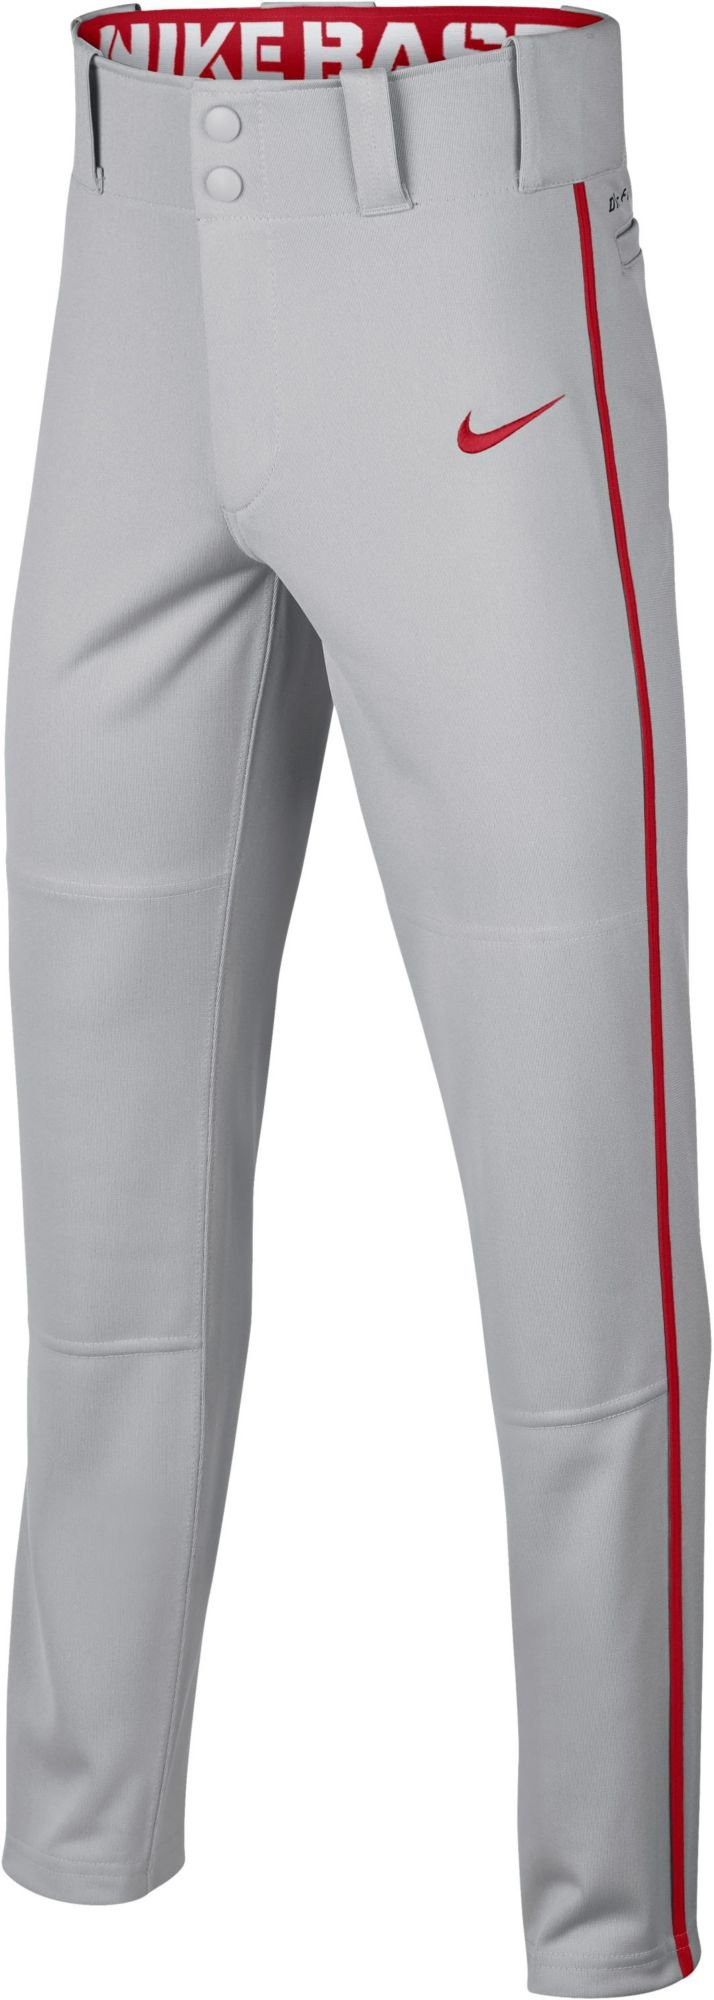 Nike Boy's Swoosh Piped Dri-FIT Baseball Pants (Grey/Red, X-Small)